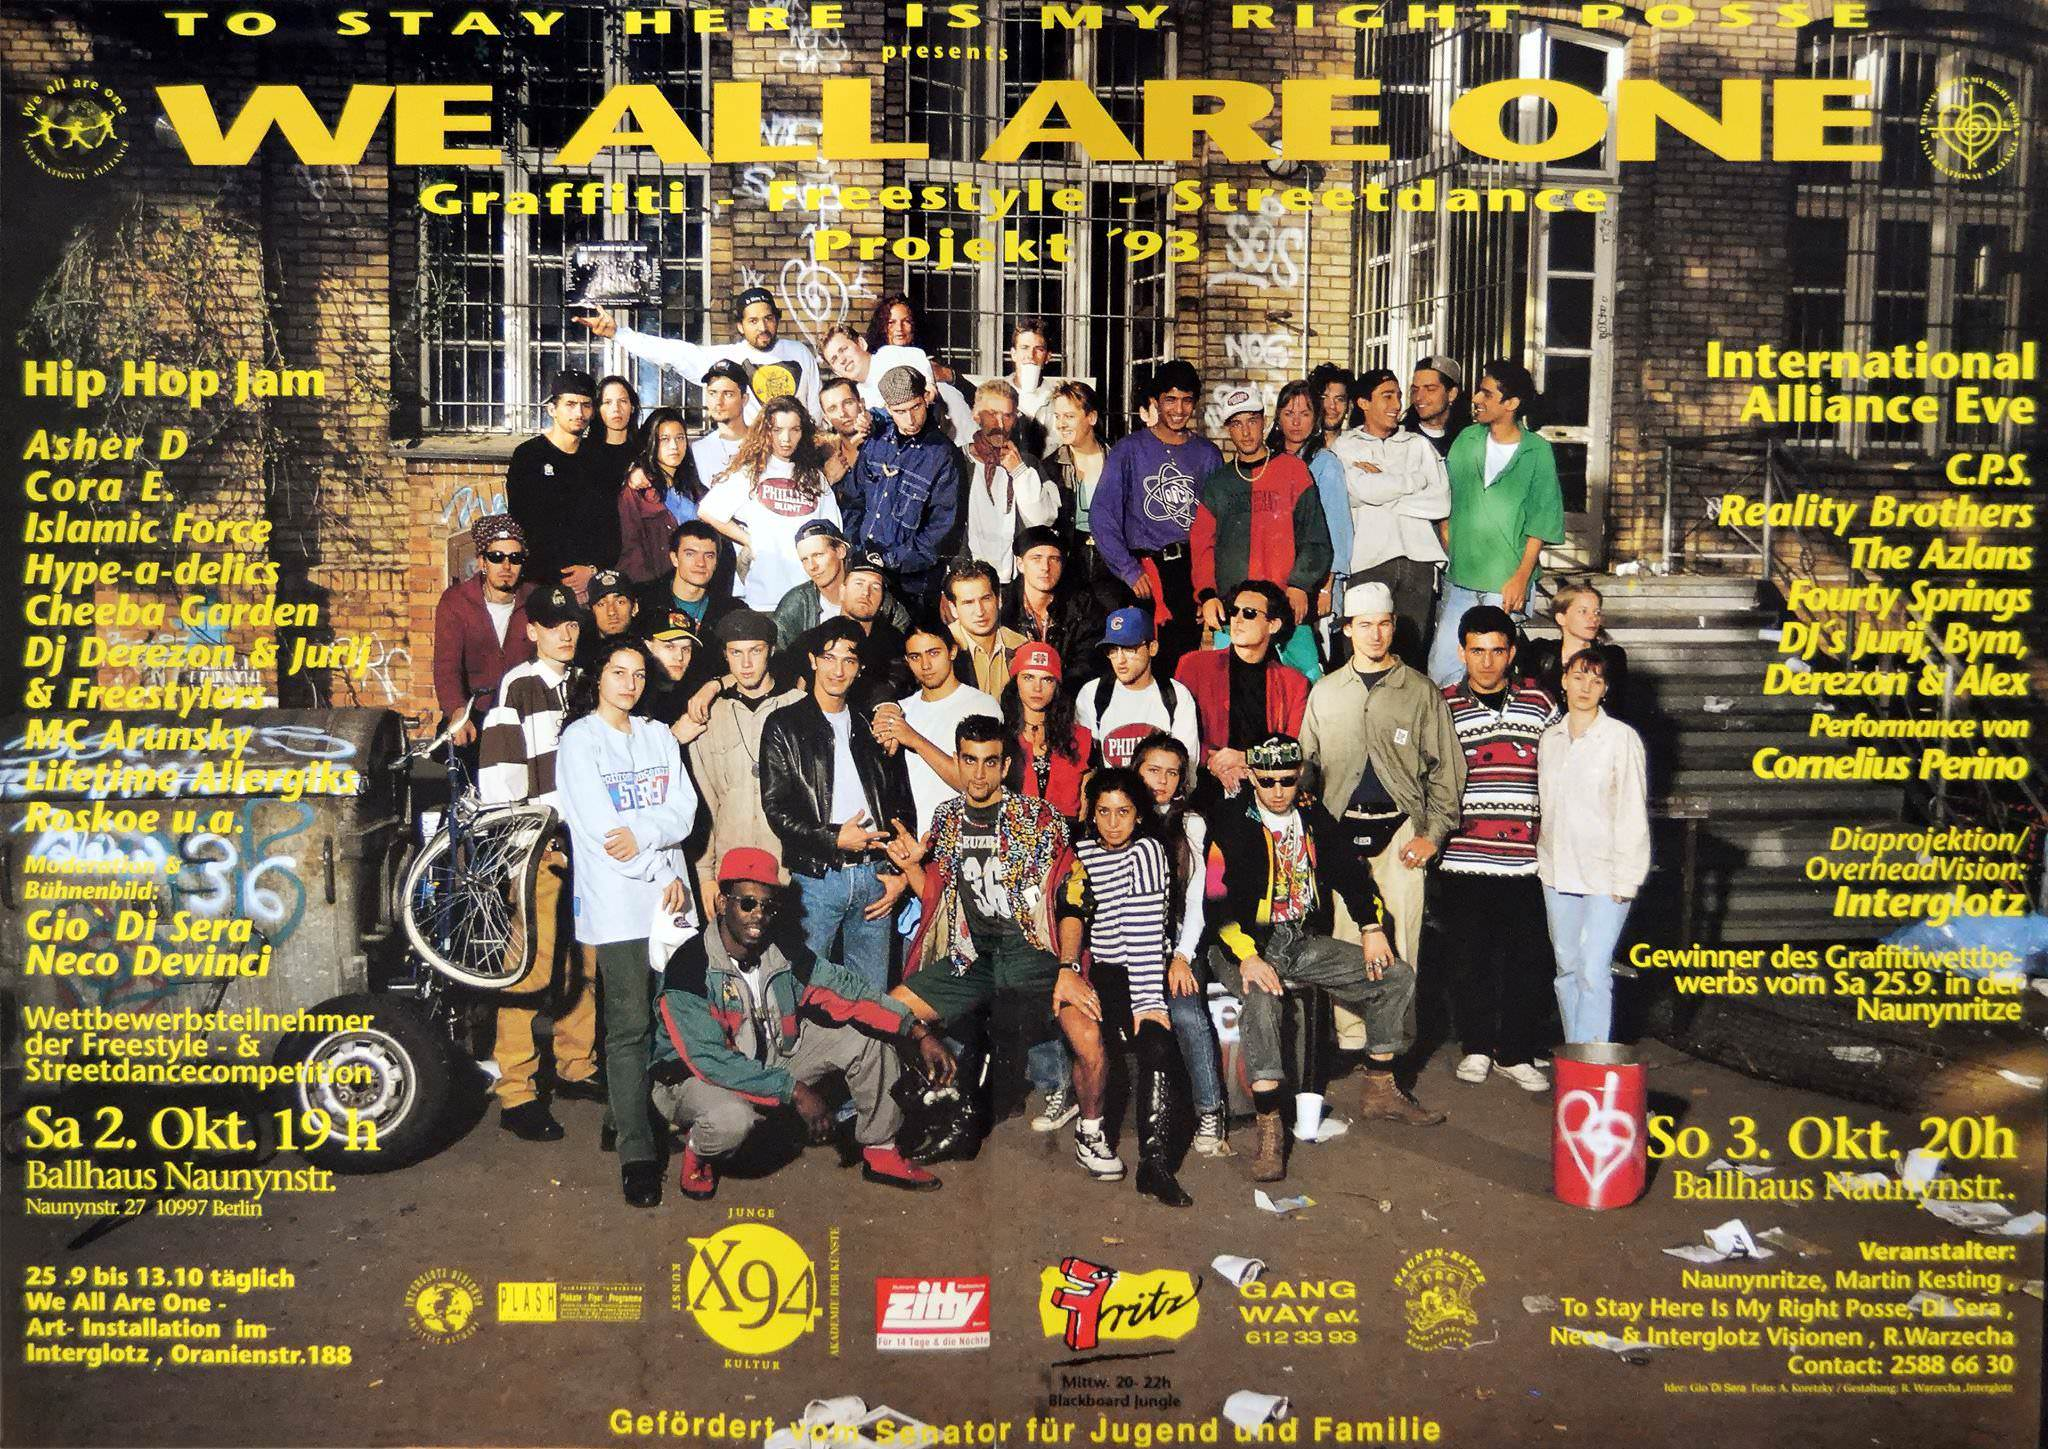 We all are One x To Stay Here is my right Posse Berlin Kreuzberg 1993